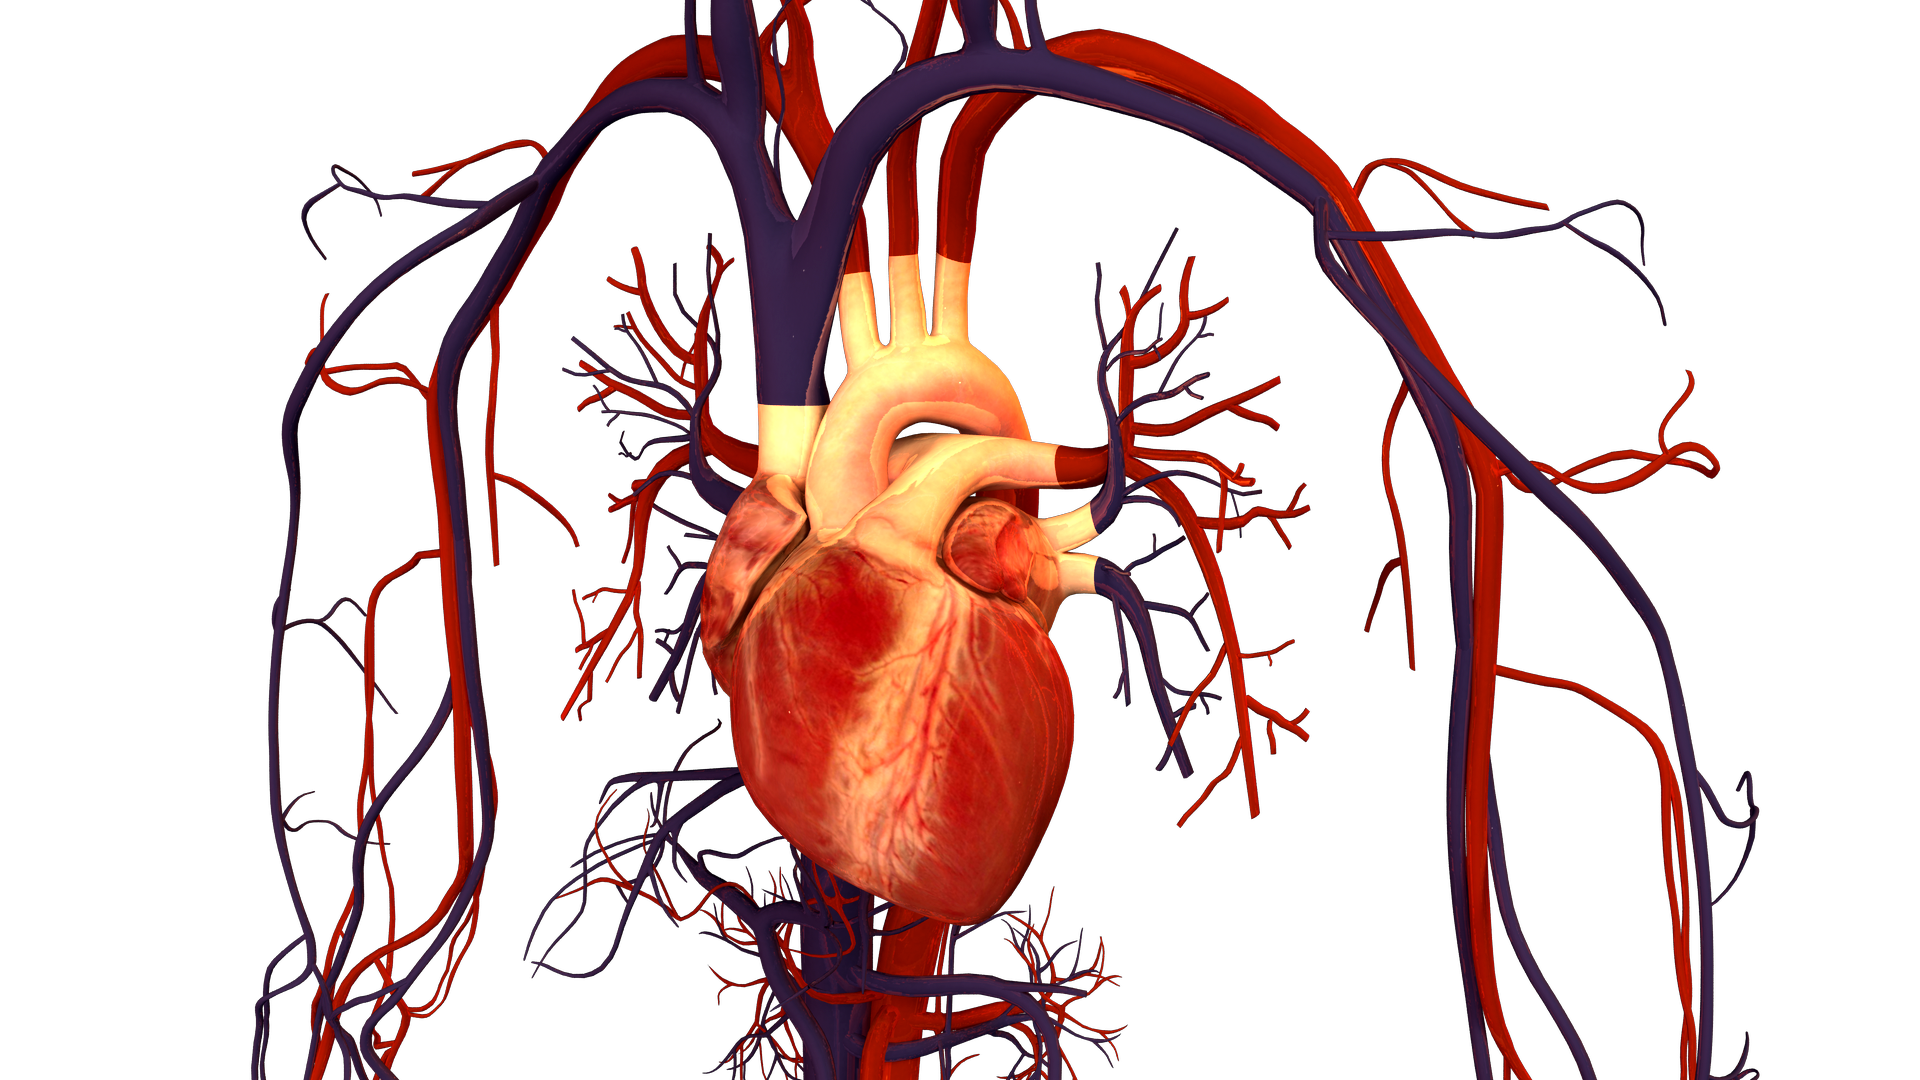 Cardiovascular System Circulatory System Parts And Functions